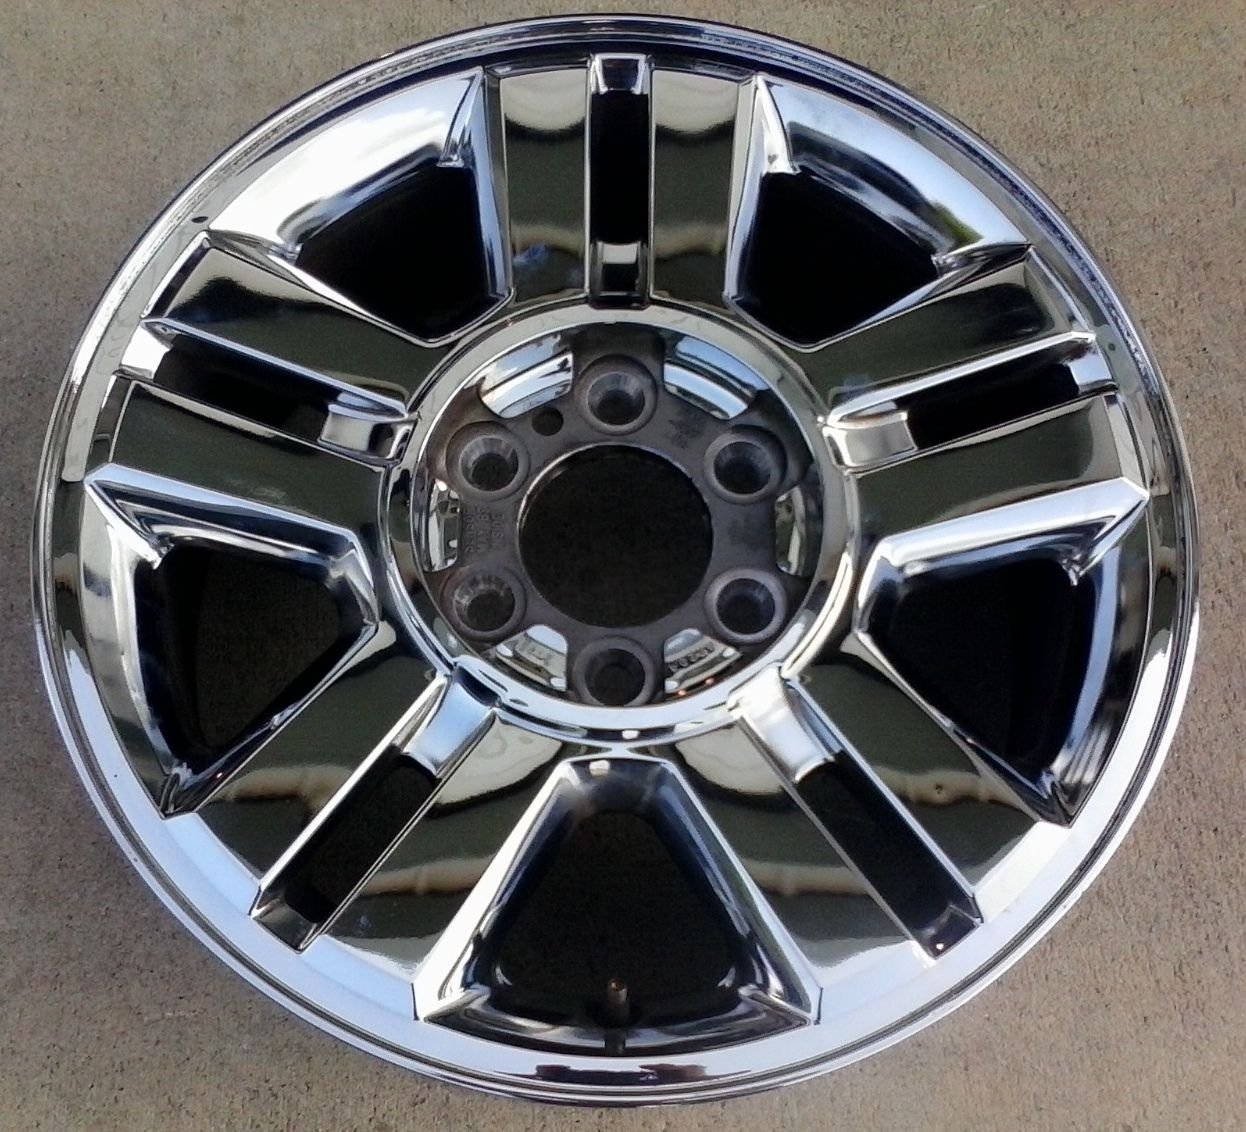 Ford F150 Factory Rims For Sale >> 18 Inch 2004 2005 2006 2007 2008 Ford F150 Truck Factory